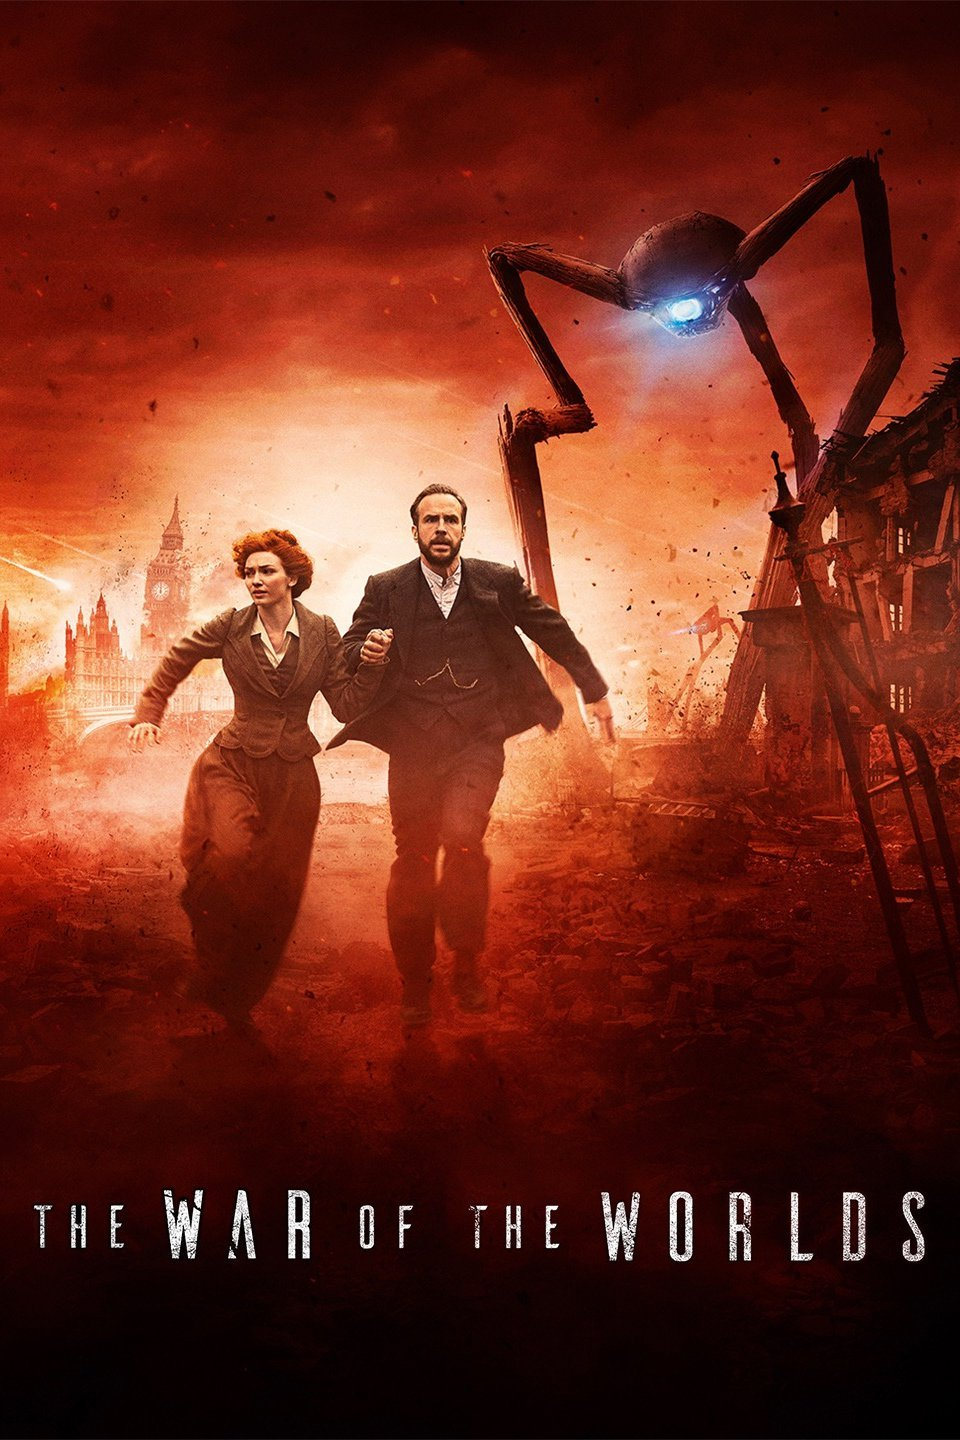 Pasaulių karas (1 Sezonas) / The War of the Worlds Season 1